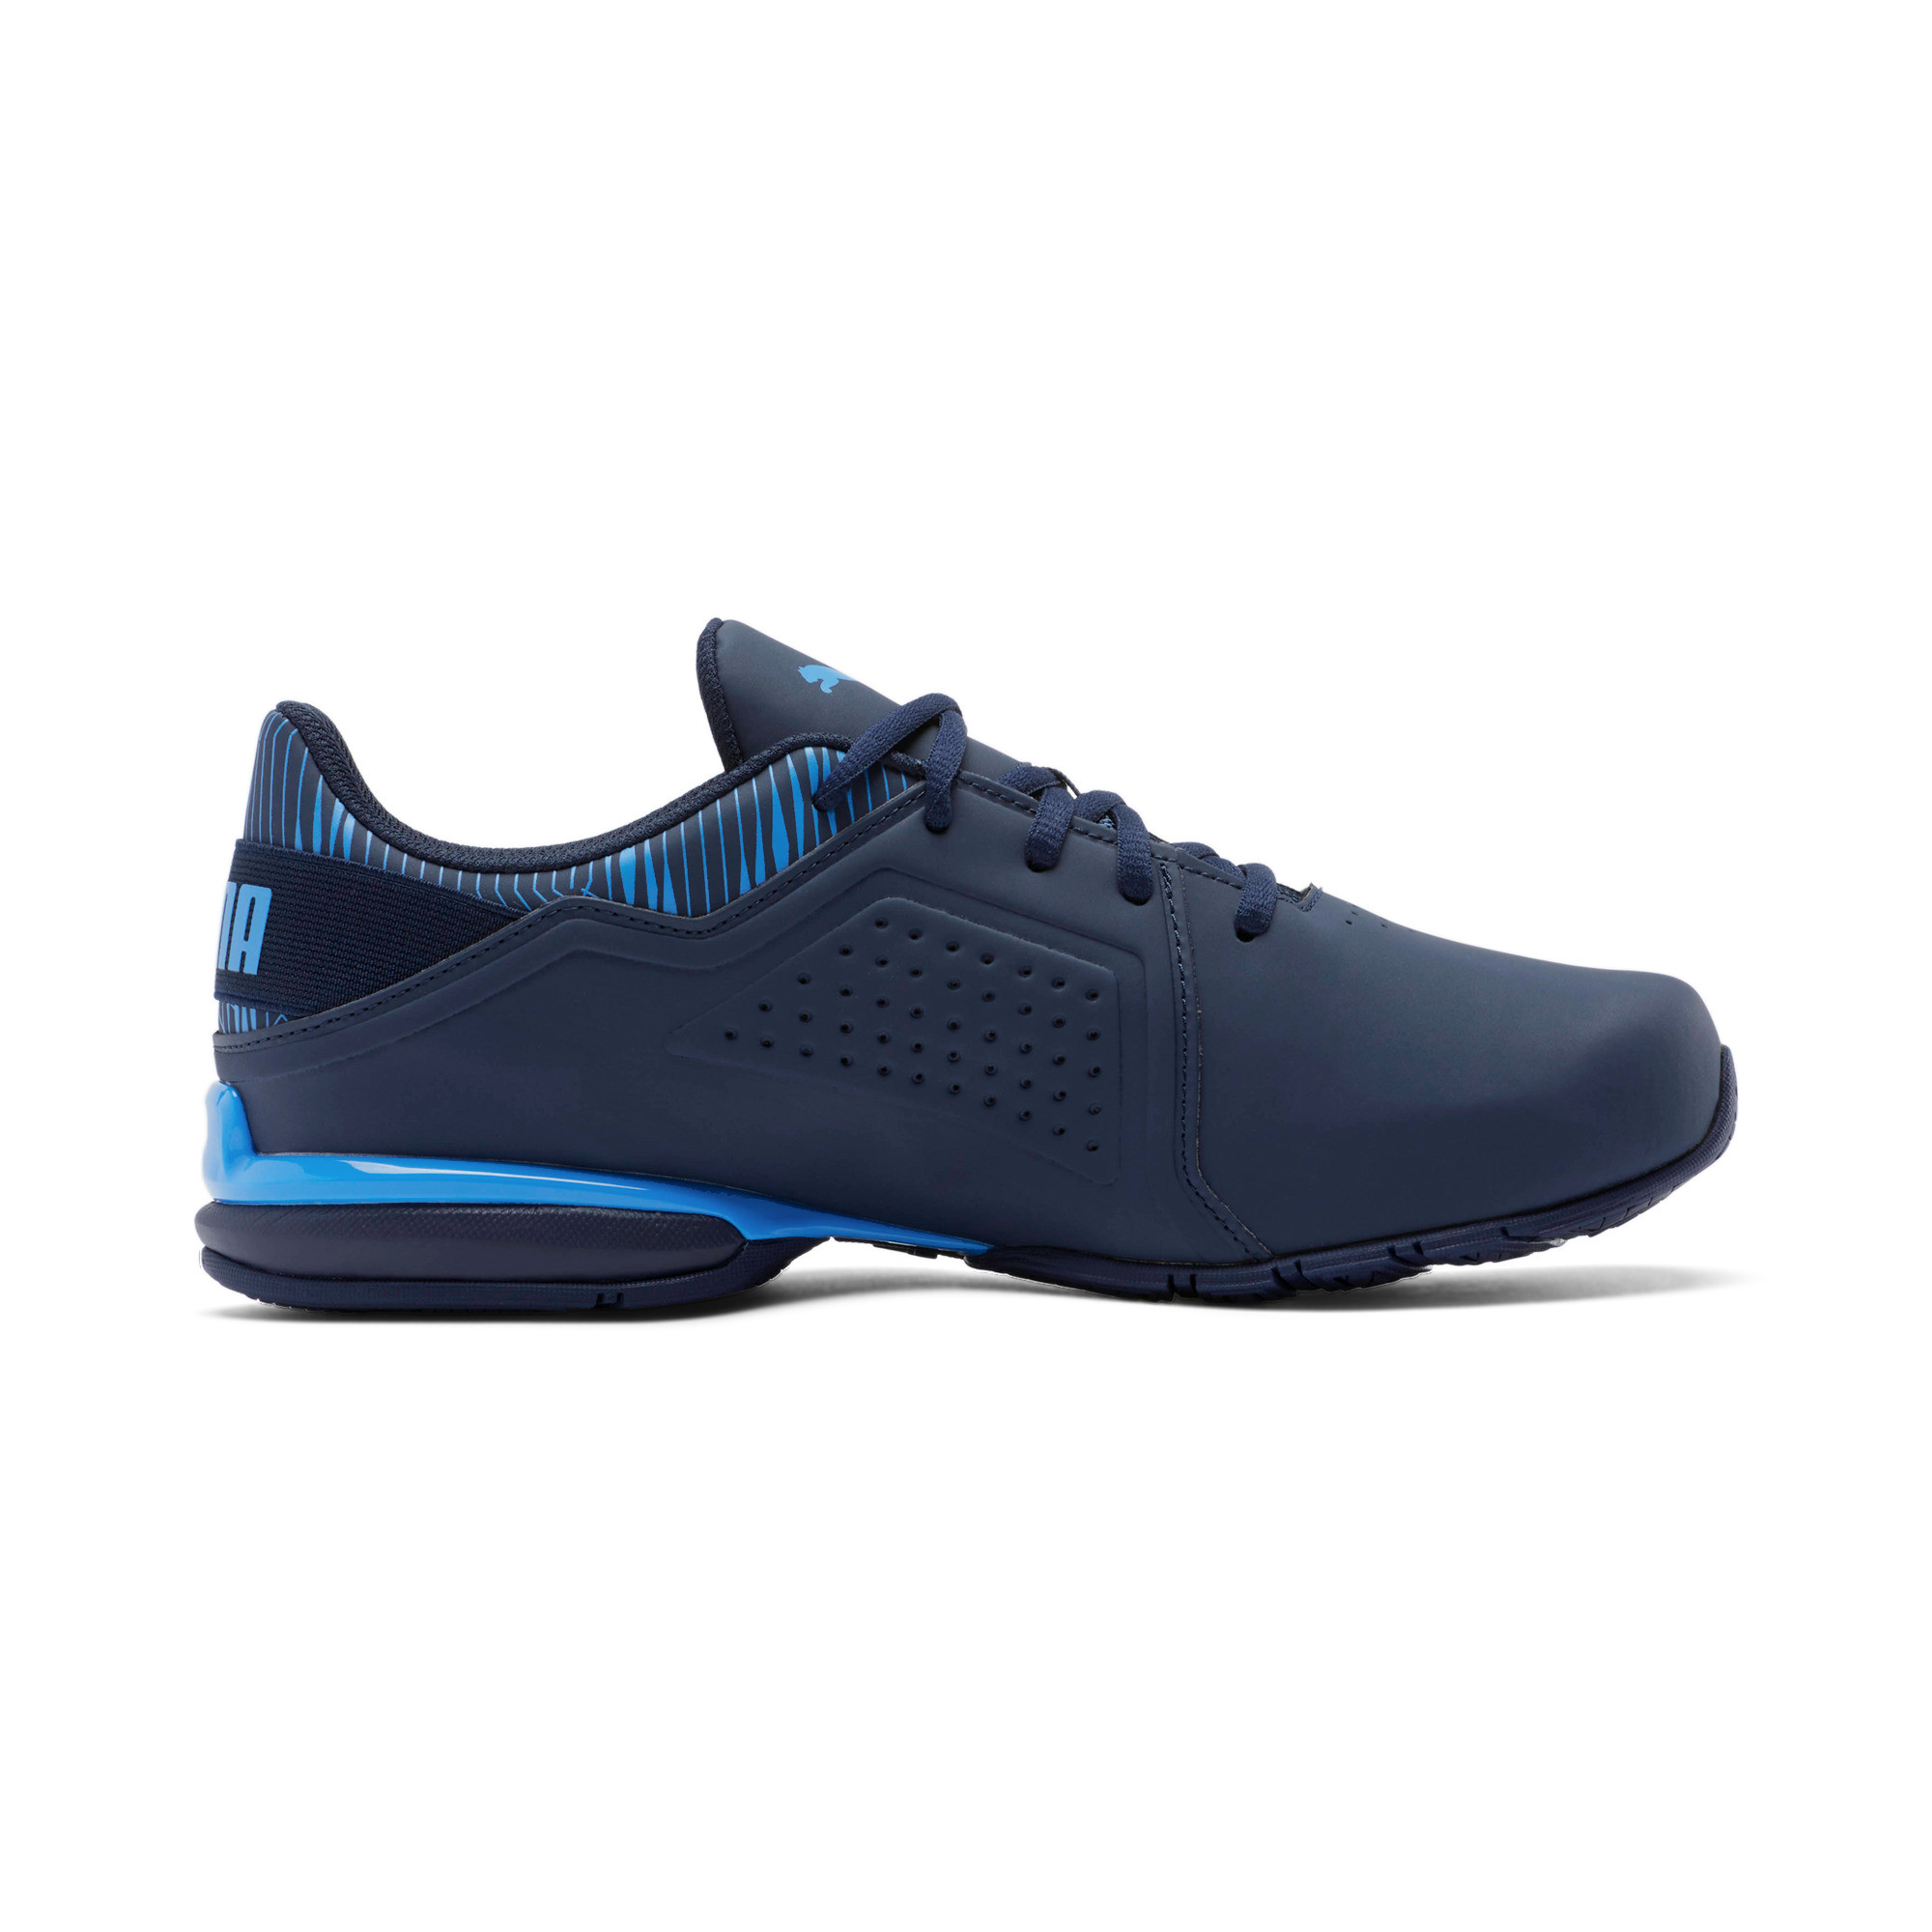 PUMA-Men-039-s-Viz-Runner-Graphic-Sneakers thumbnail 12